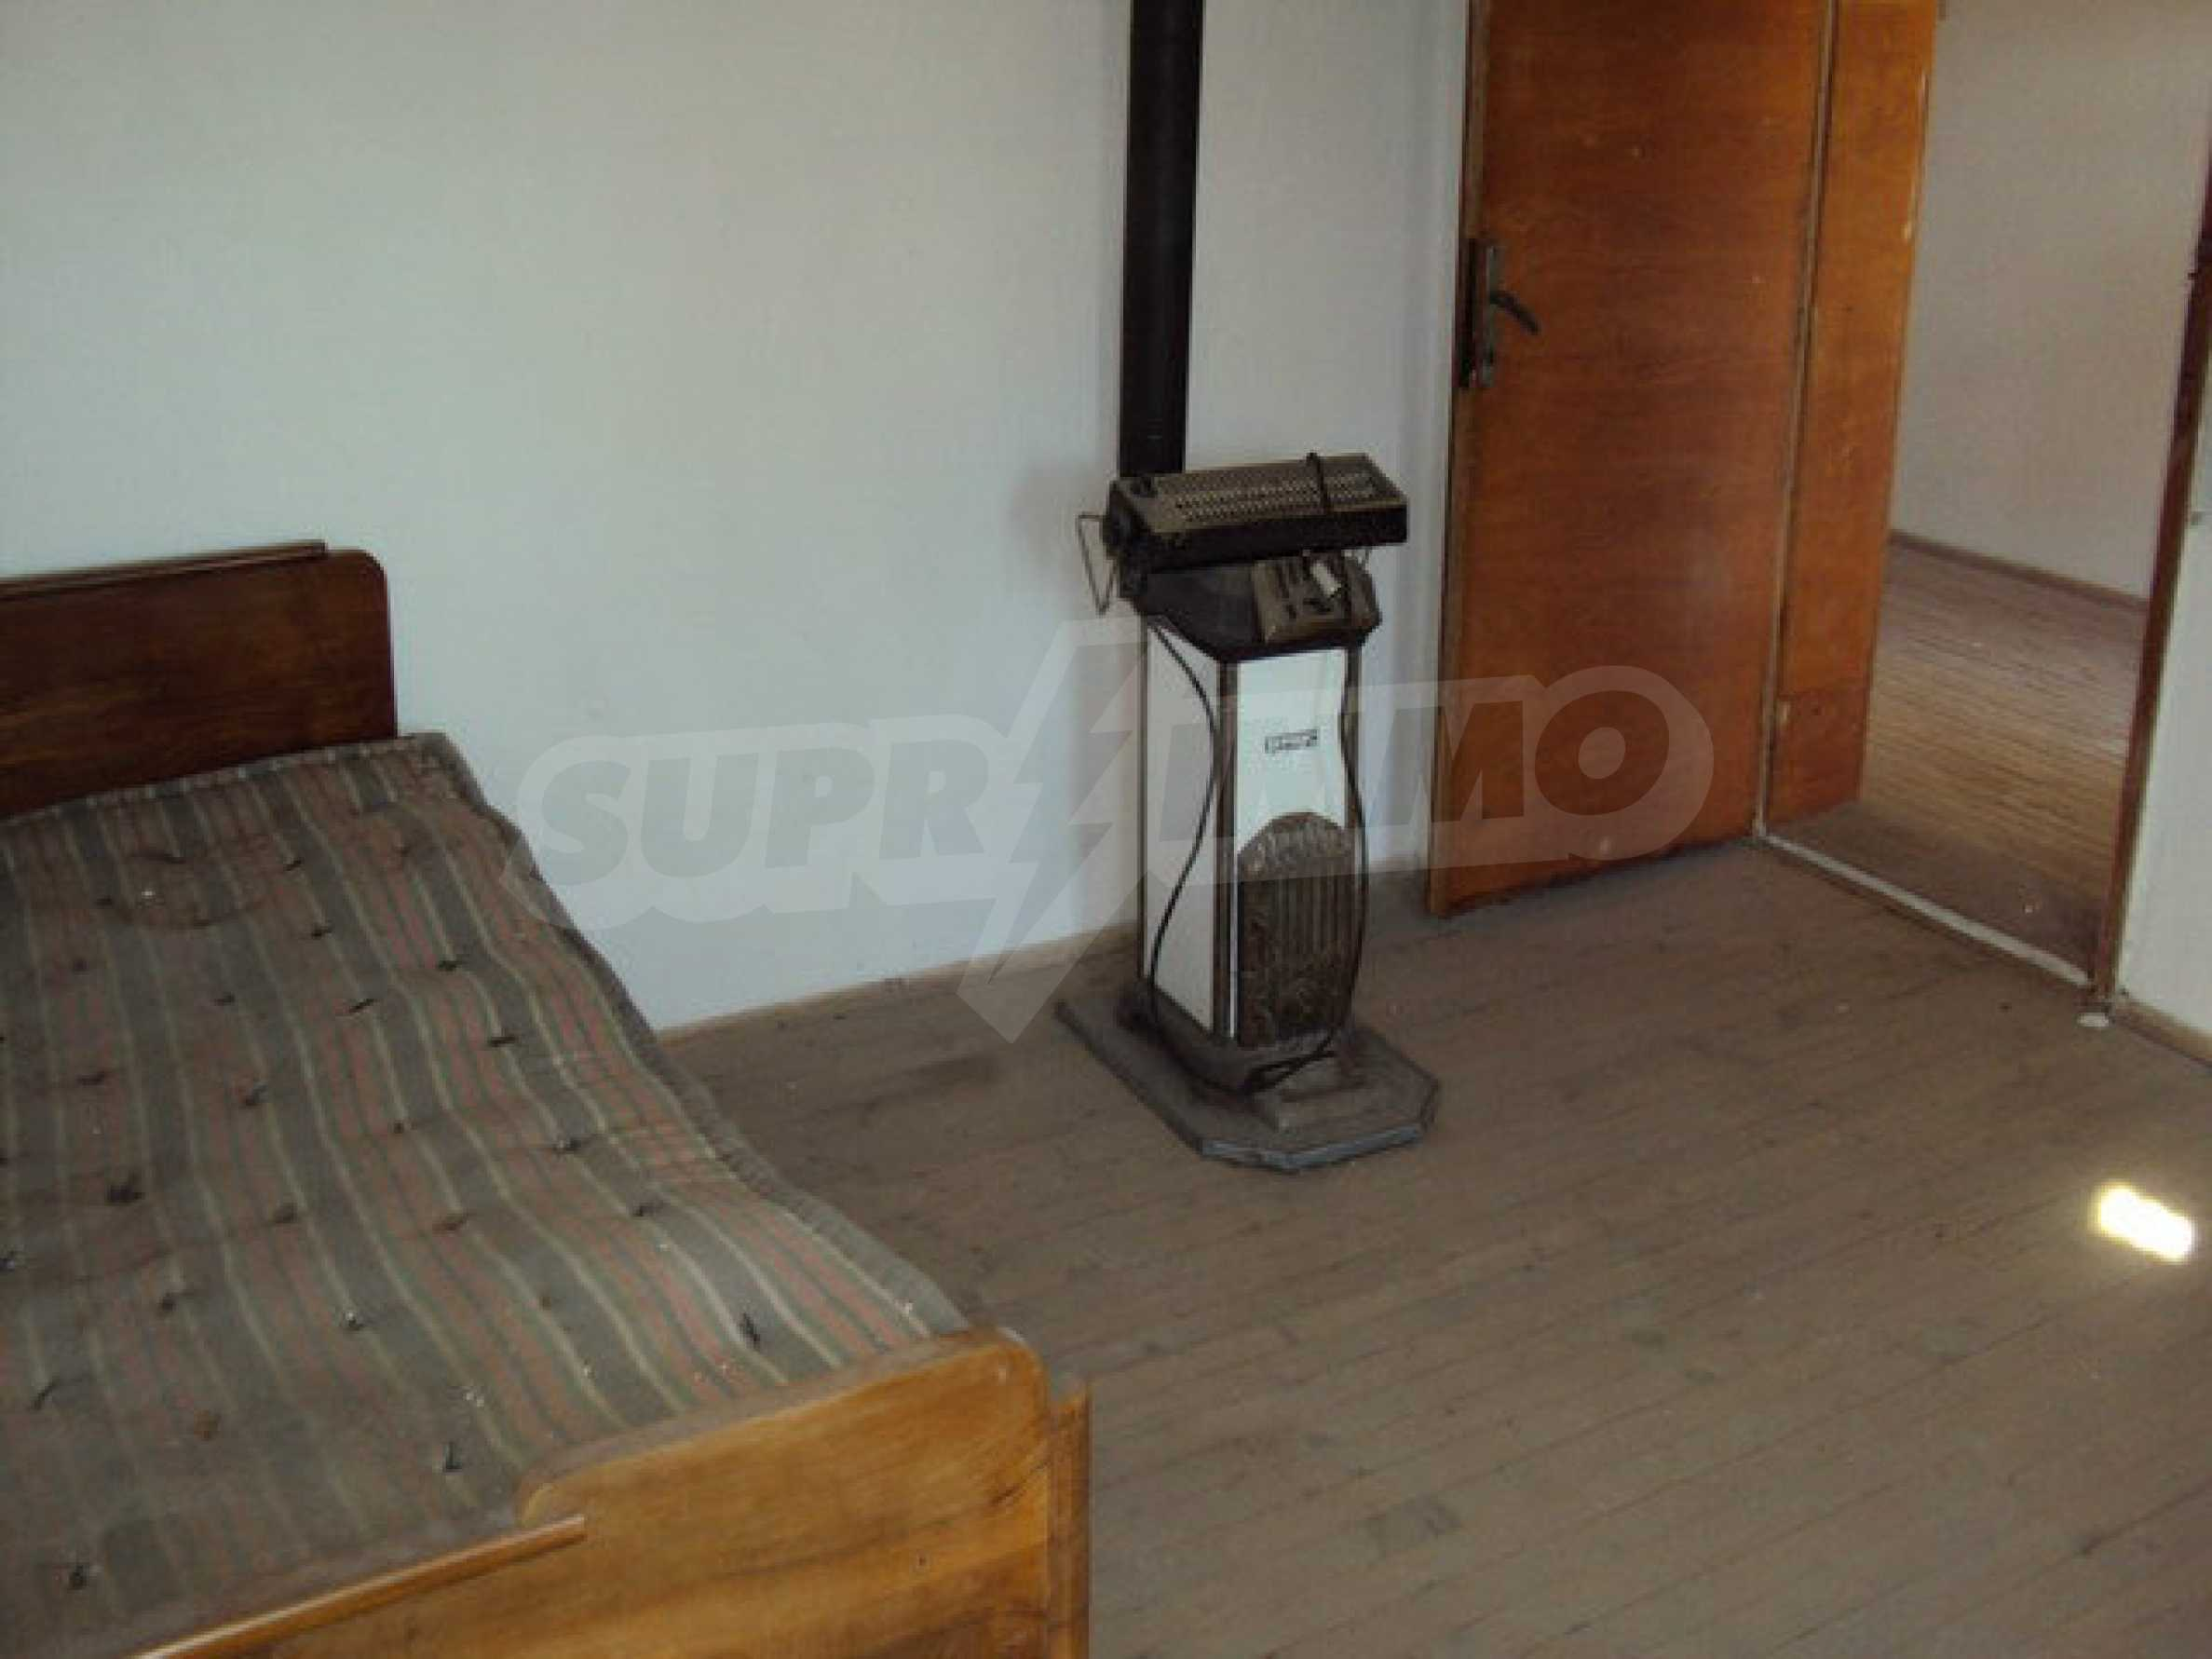 Spacious house in excellent condition in a village 25 km. the old capital of Veliko Tarnovo 12